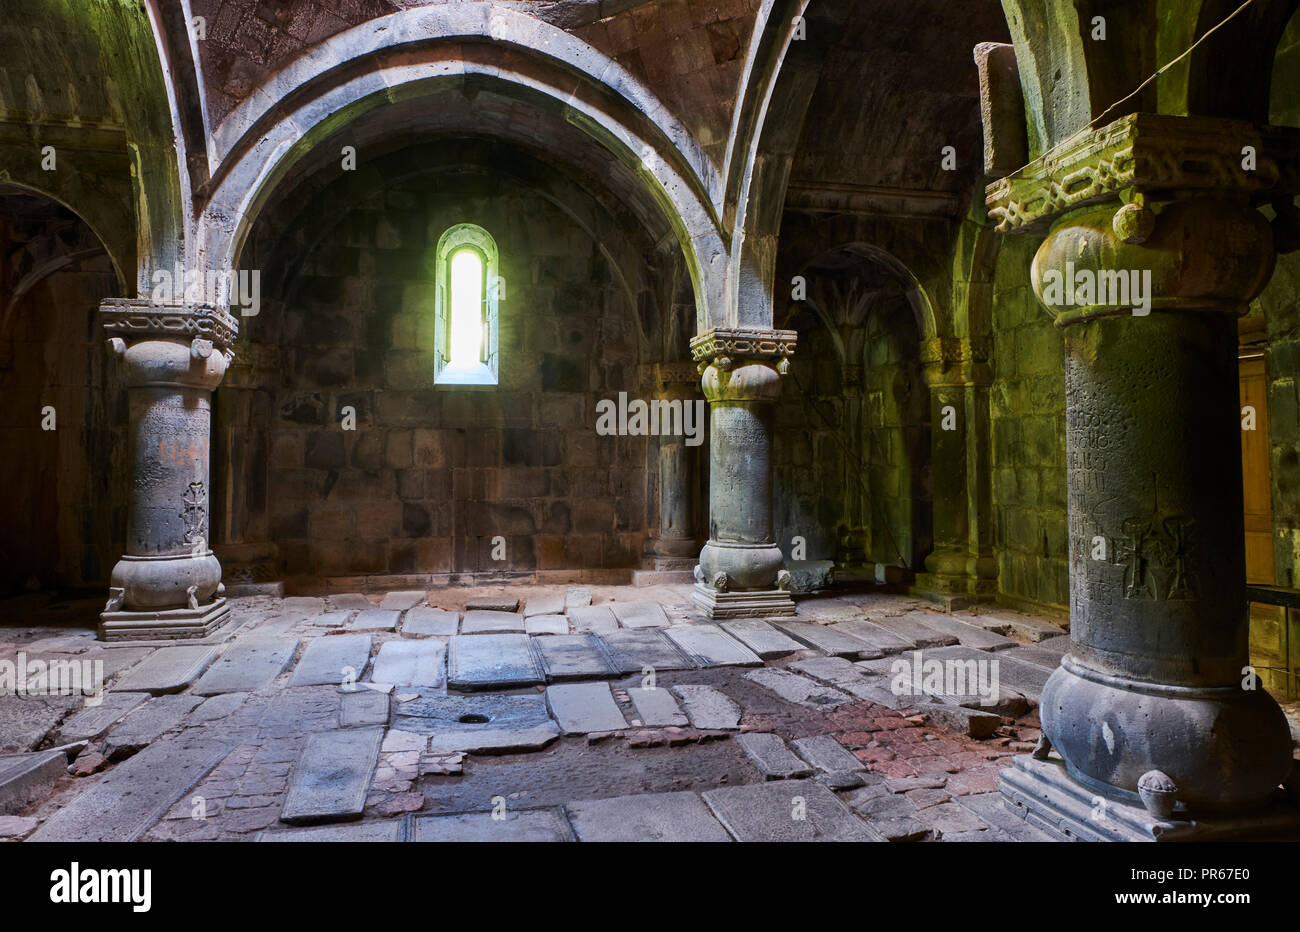 Armenia, Mori province, Sanahin church - Stock Image